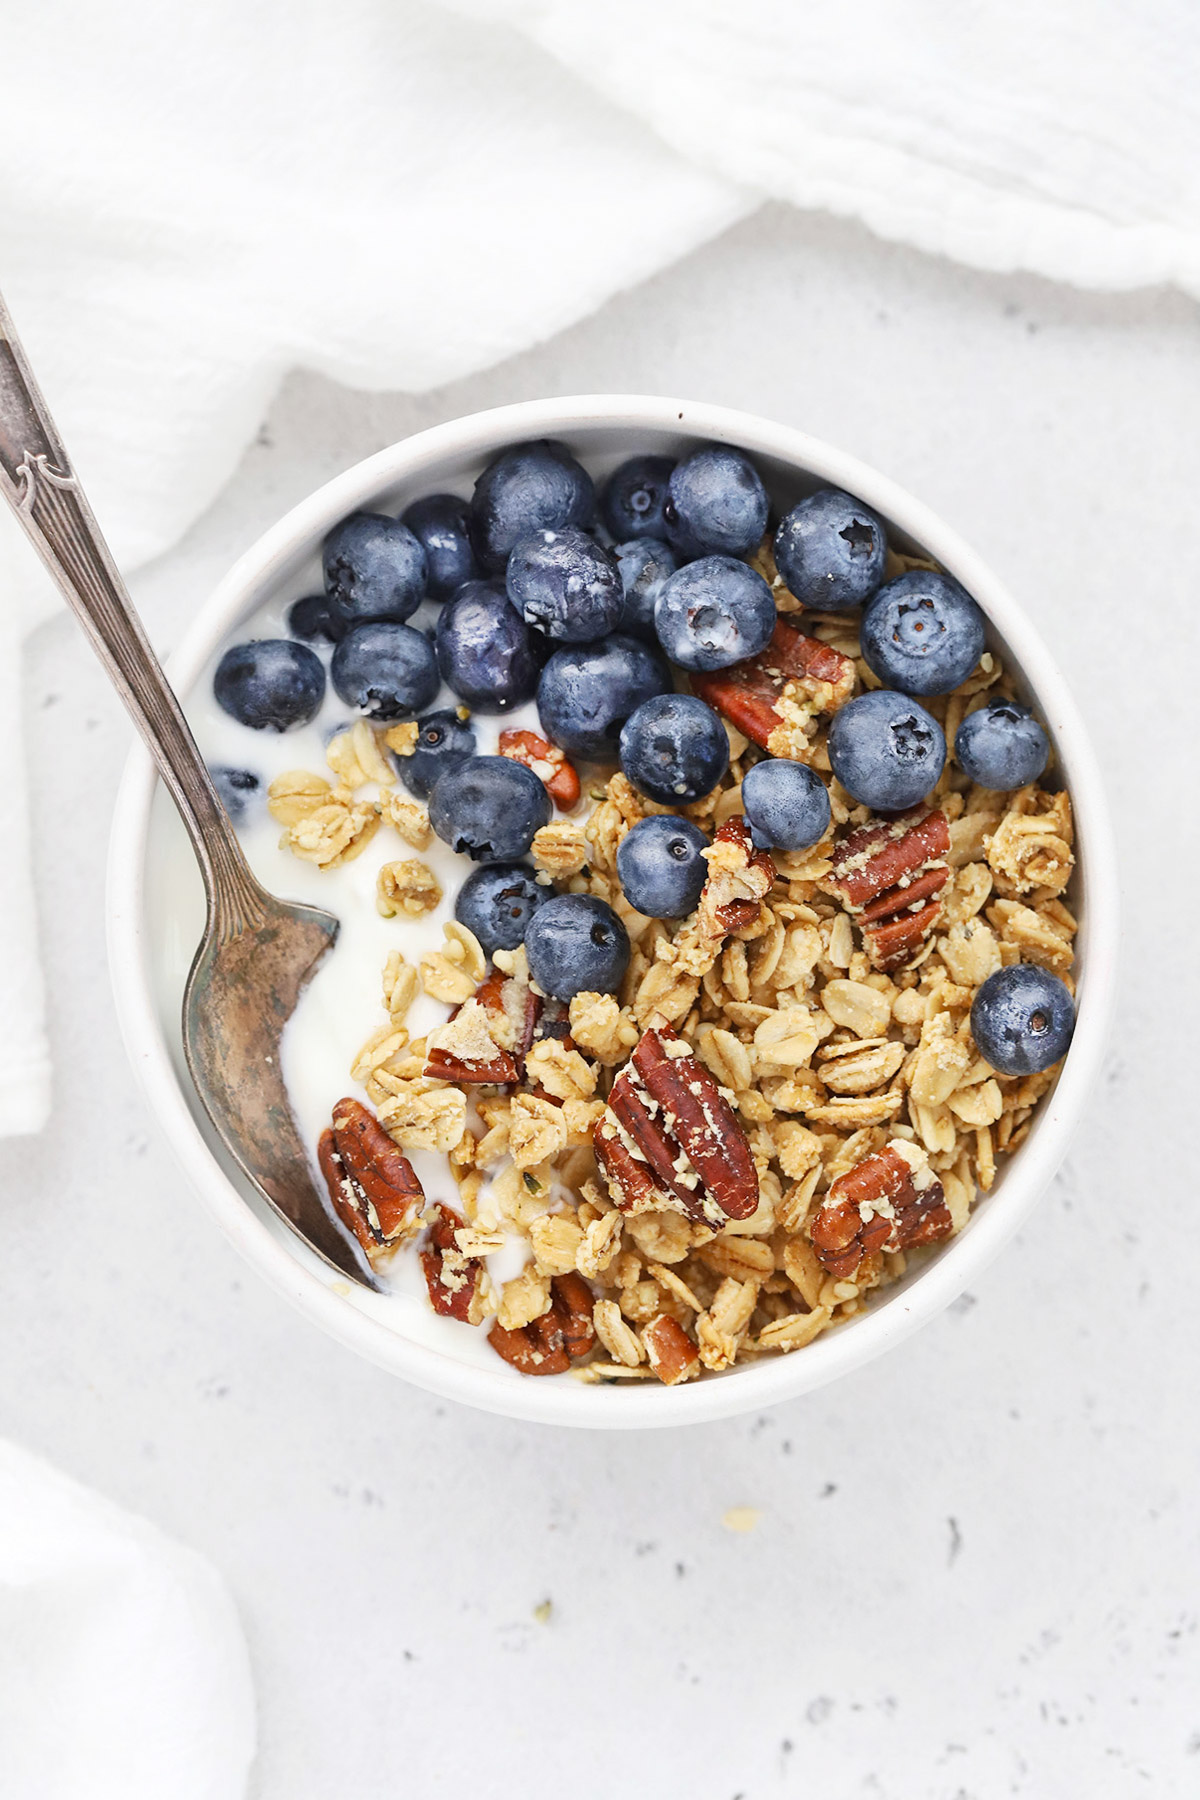 Overhead view of a bowl of yogurt topped with homemade maple pecan granola and fresh blueberries